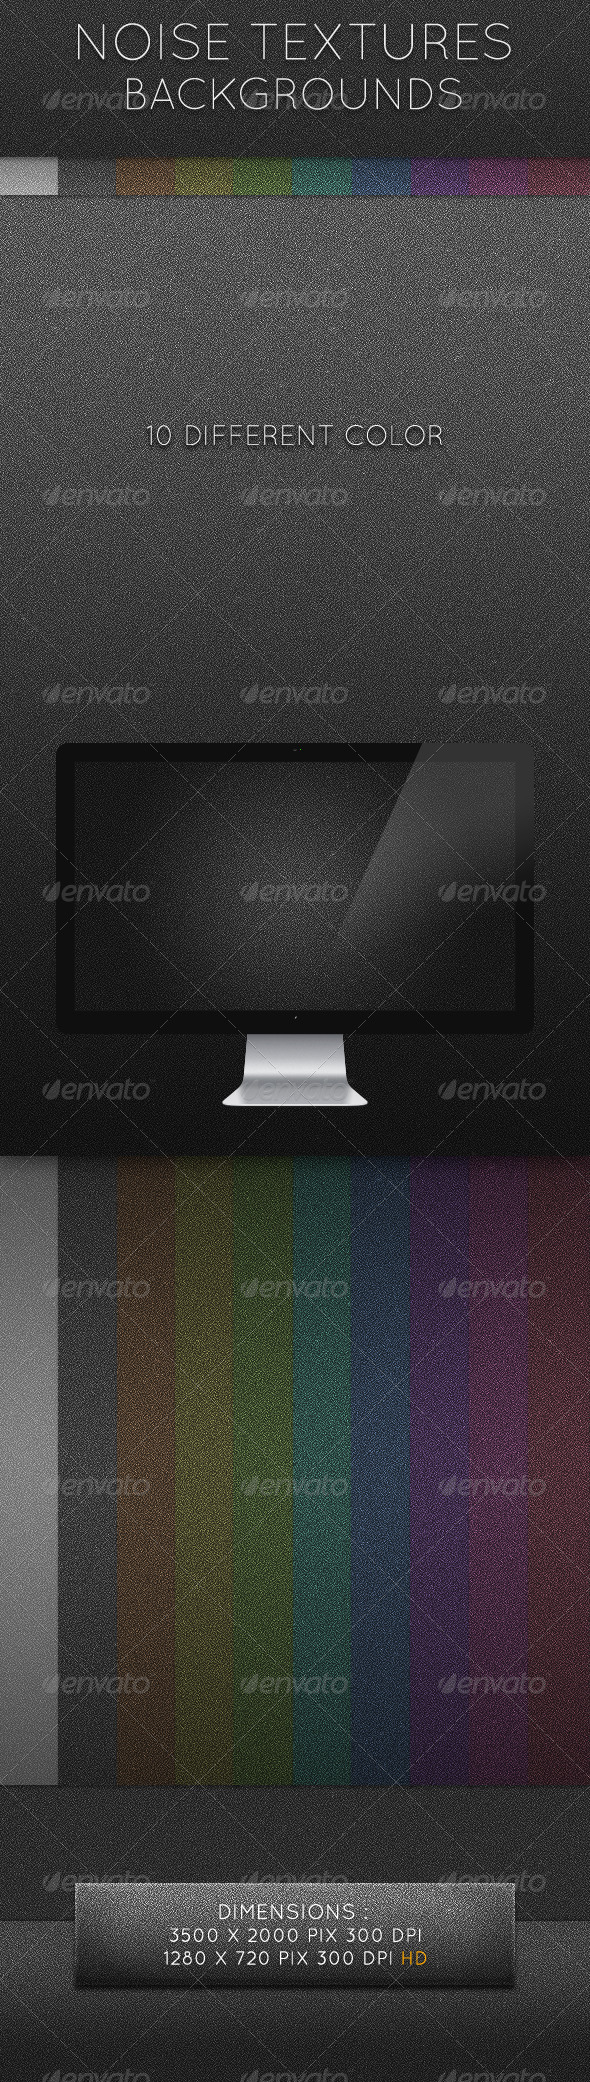 GraphicRiver Noise Textures Background 2452364